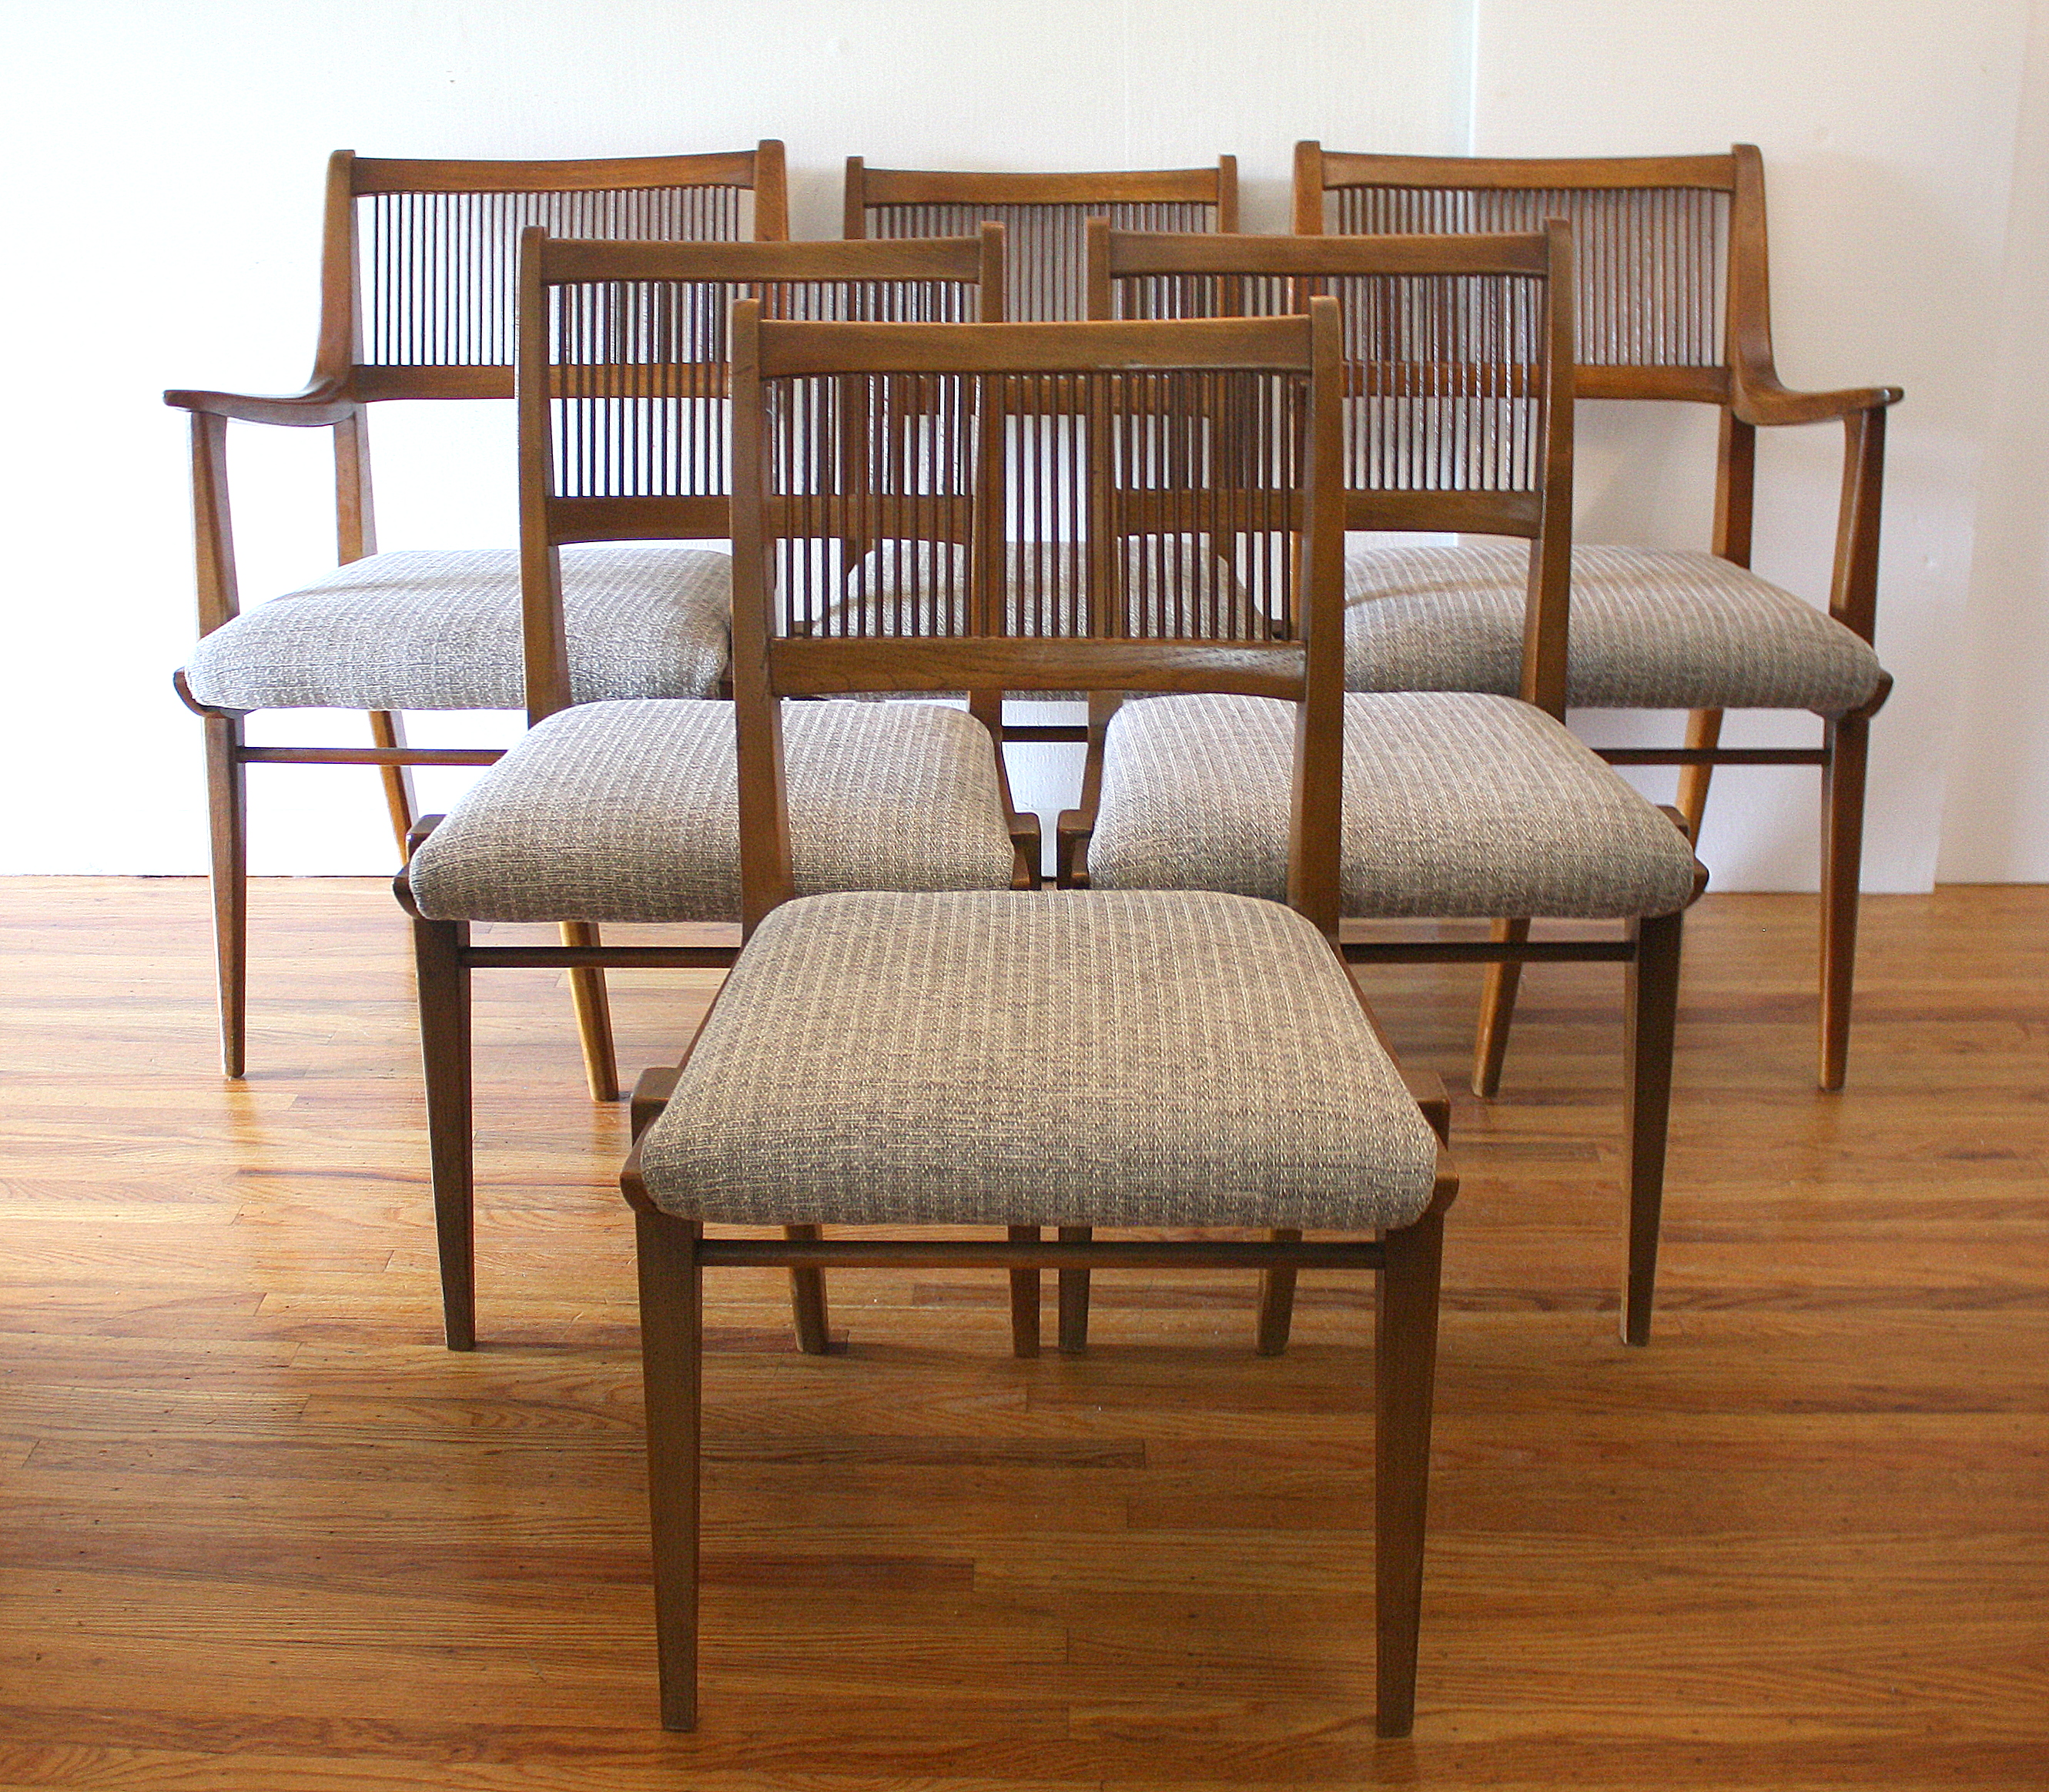 Drexel Chairs Mid Century Modern Dining Chair Set By Drexel Picked Vintage